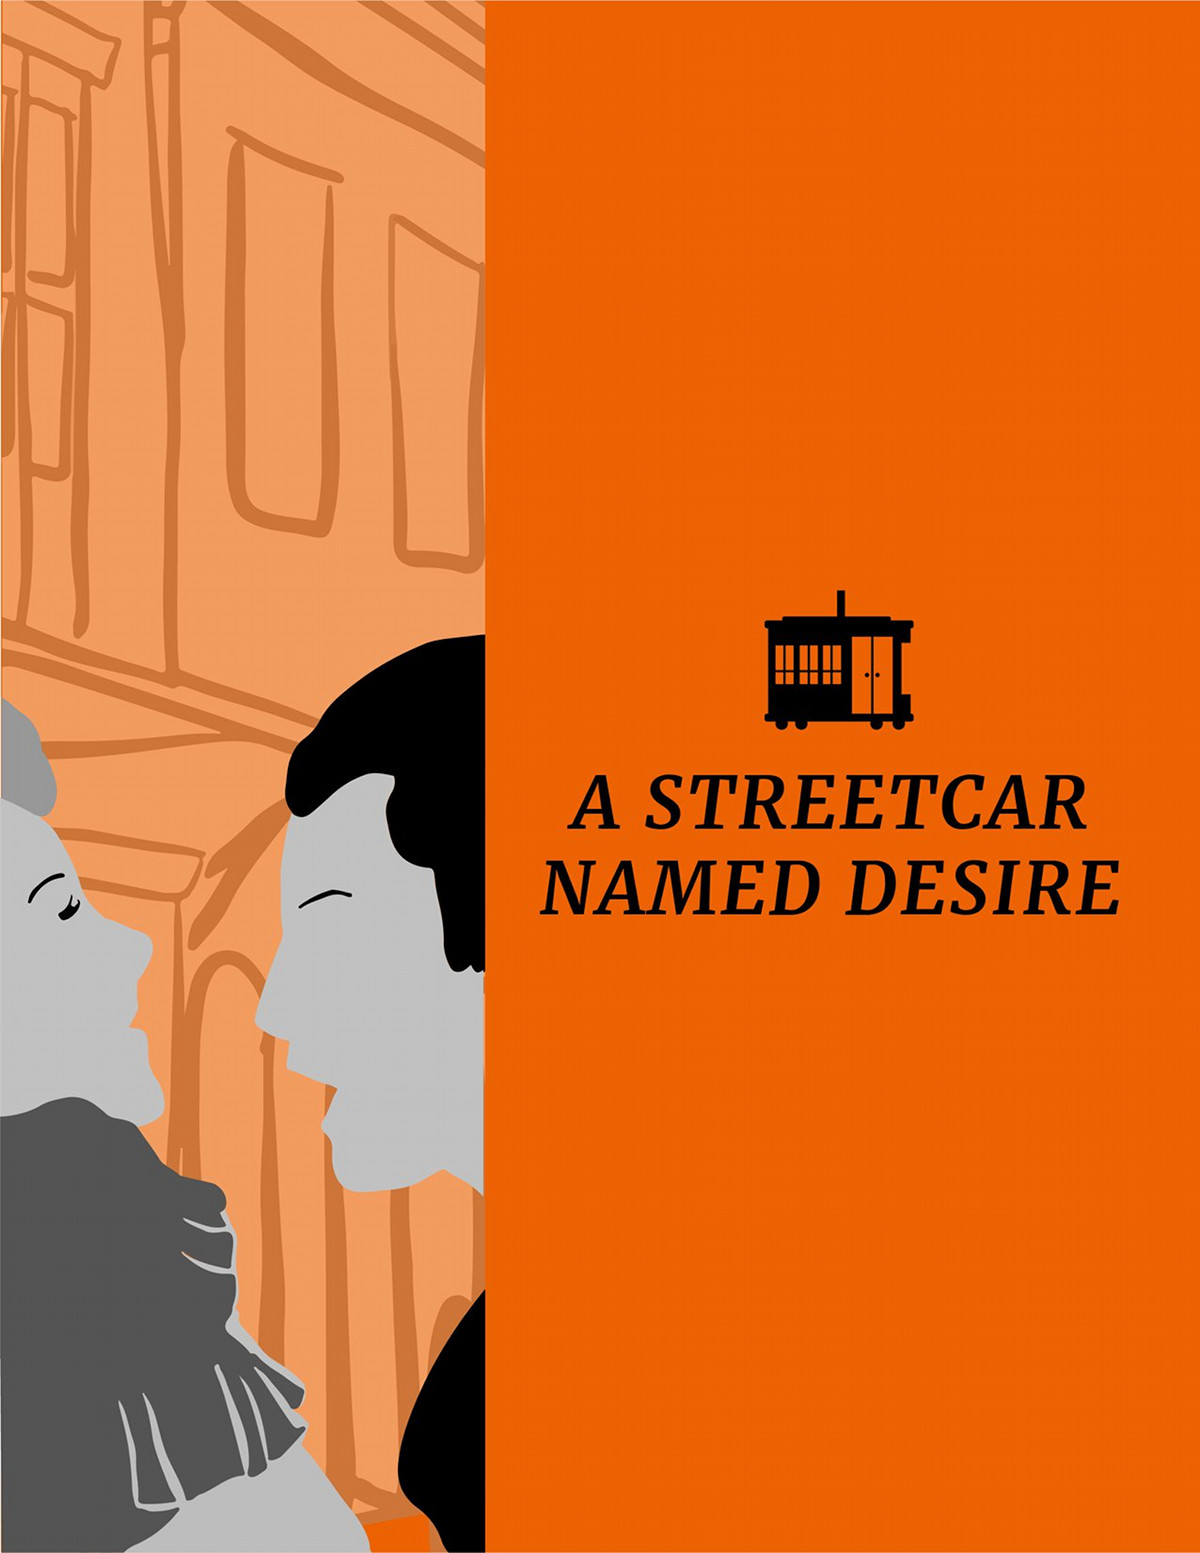 Grand Rapids Civic Theatre A Street Car Named Desire poster